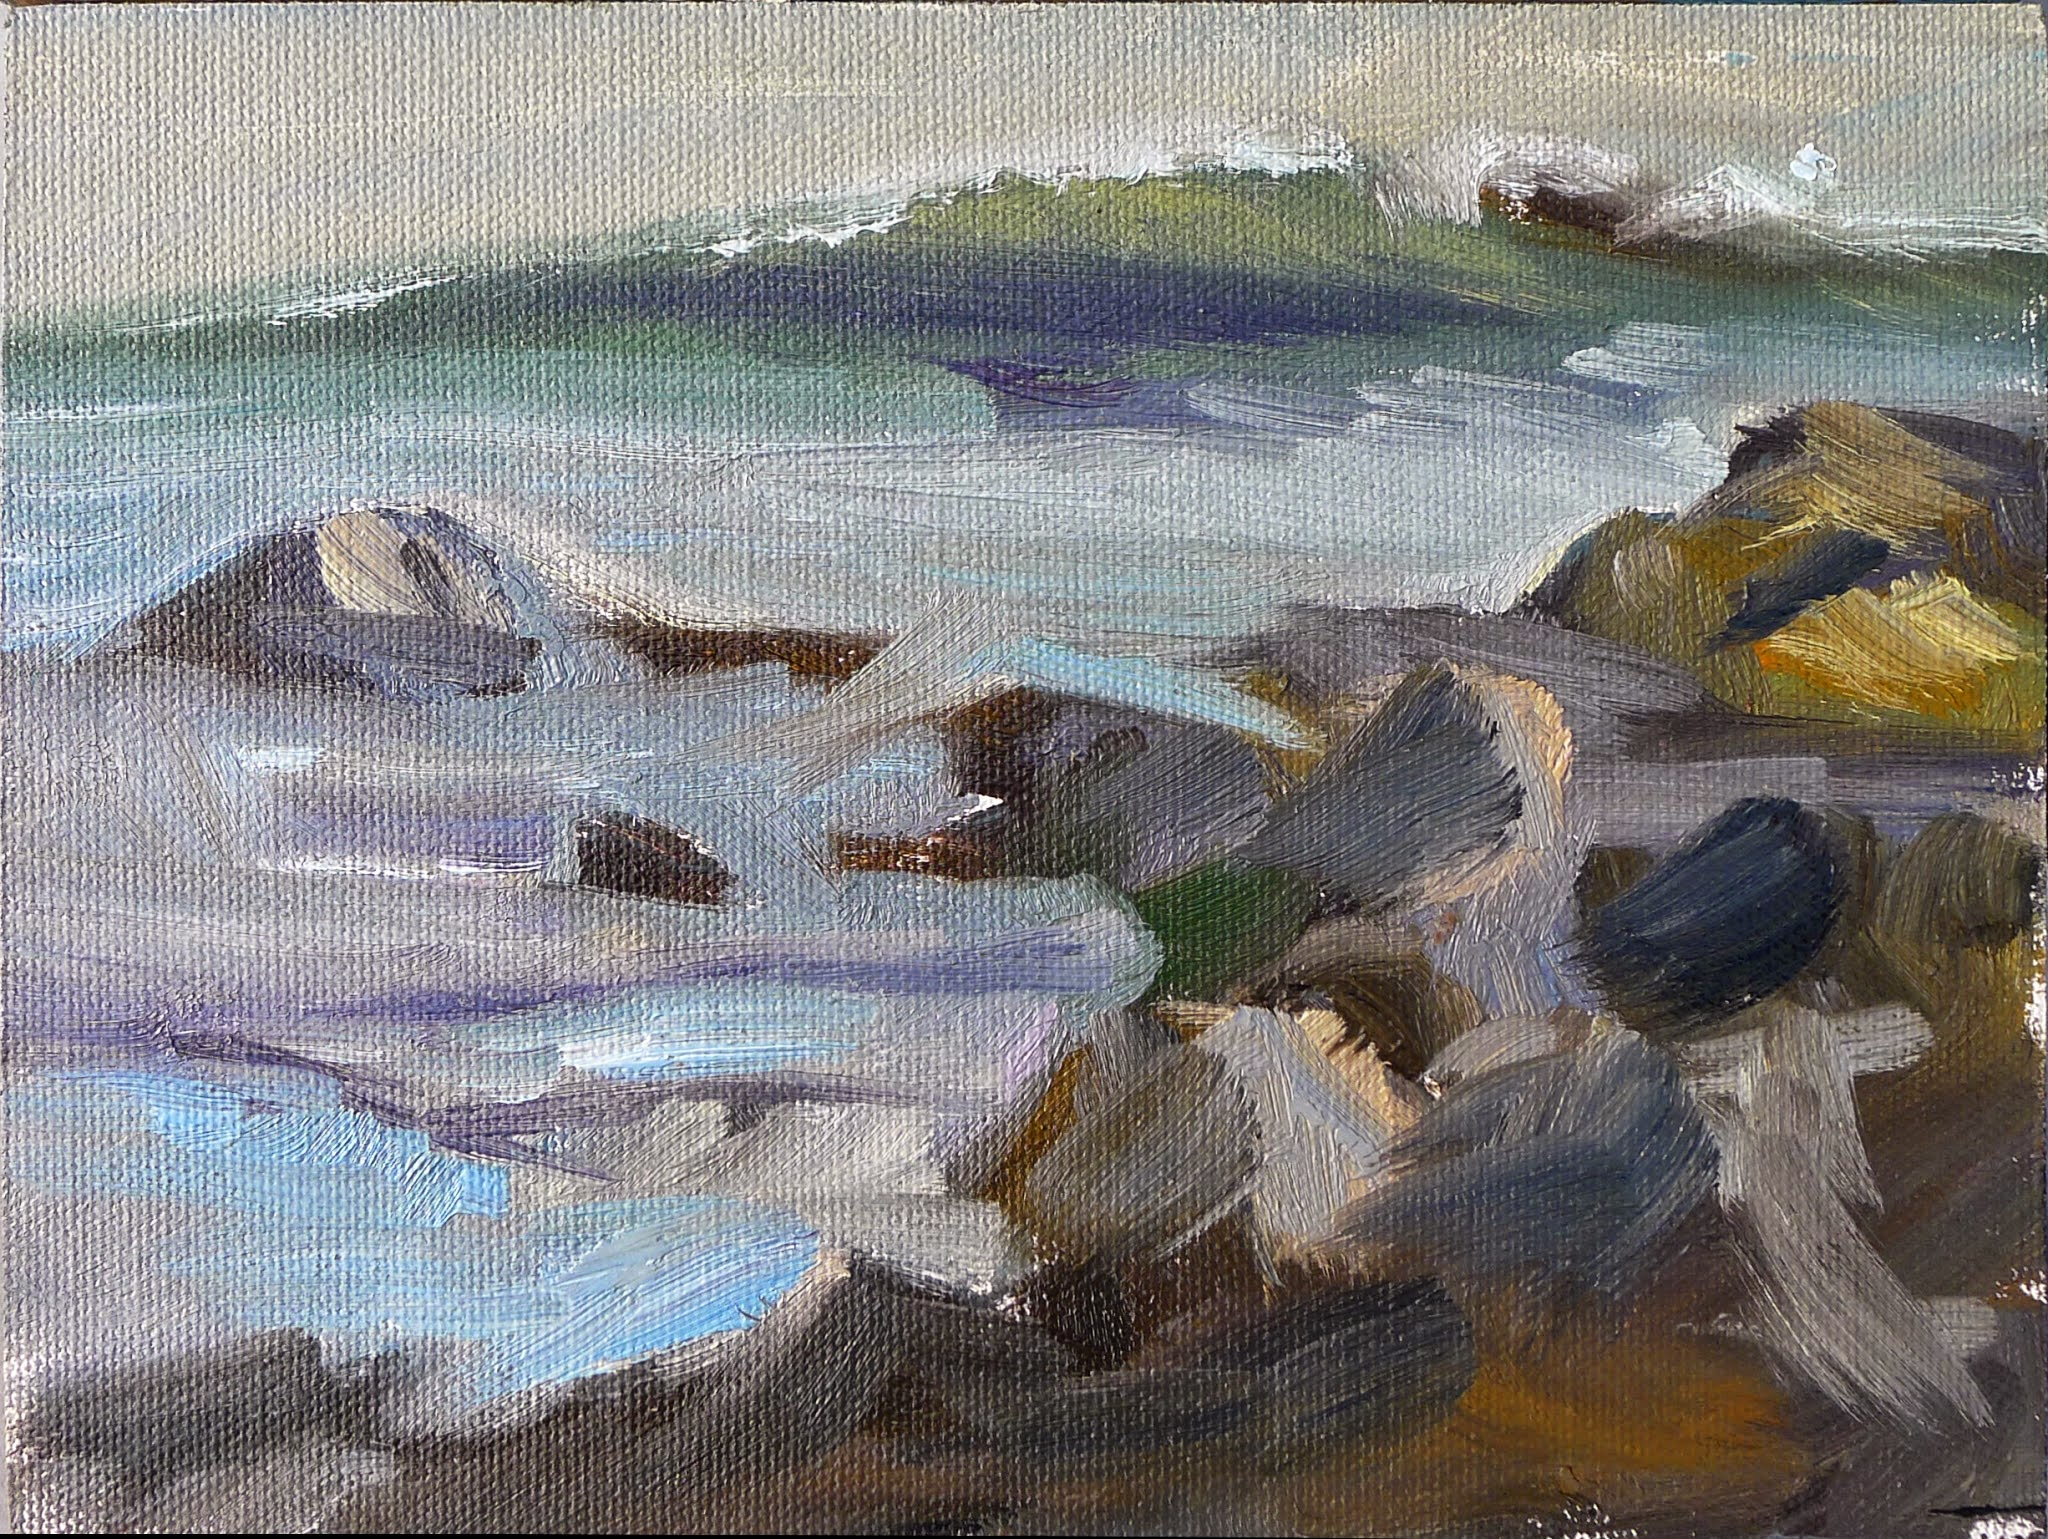 Photo: Surf at Marshall's Point, oil on canvasboard, 6X8